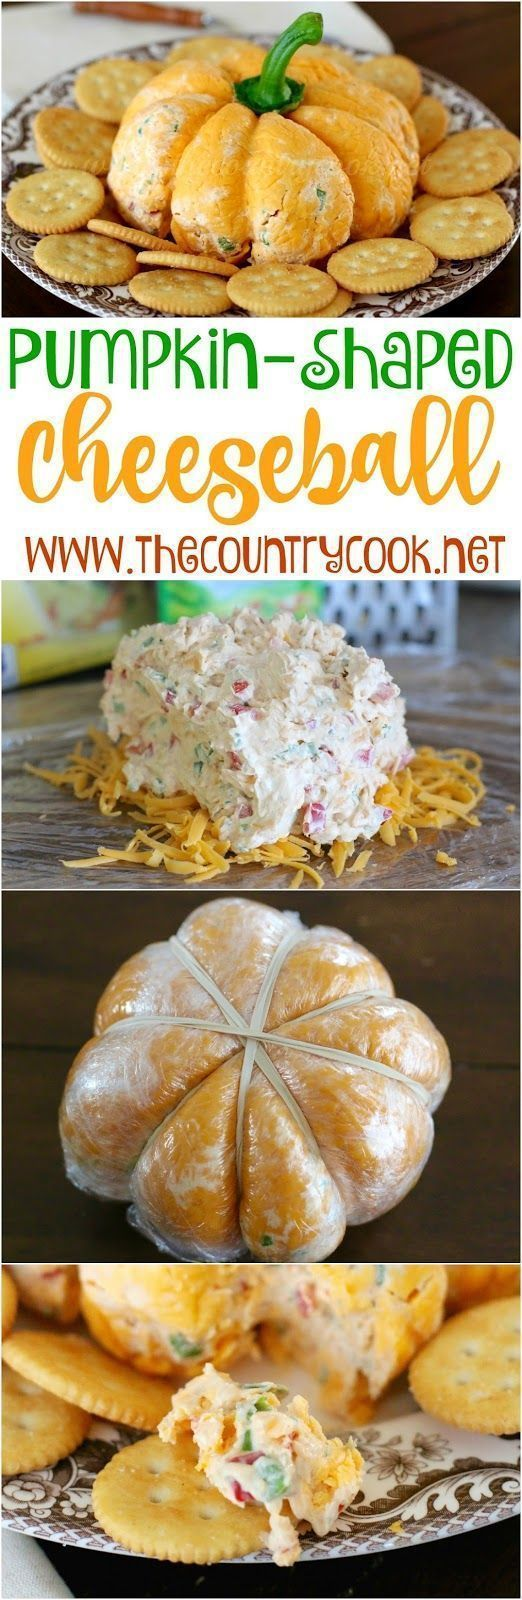 Pumpkin-Shaped Cheese Ball Thanksgiving Appetizer Recipe | The Country Cook - The BEST Classic, Improved and Traditional Thanksgiving Dinner Menu Favorites Recipes - Main Dishes, Side Dishes, Appetizers, Salads, Yummy Desserts and more!